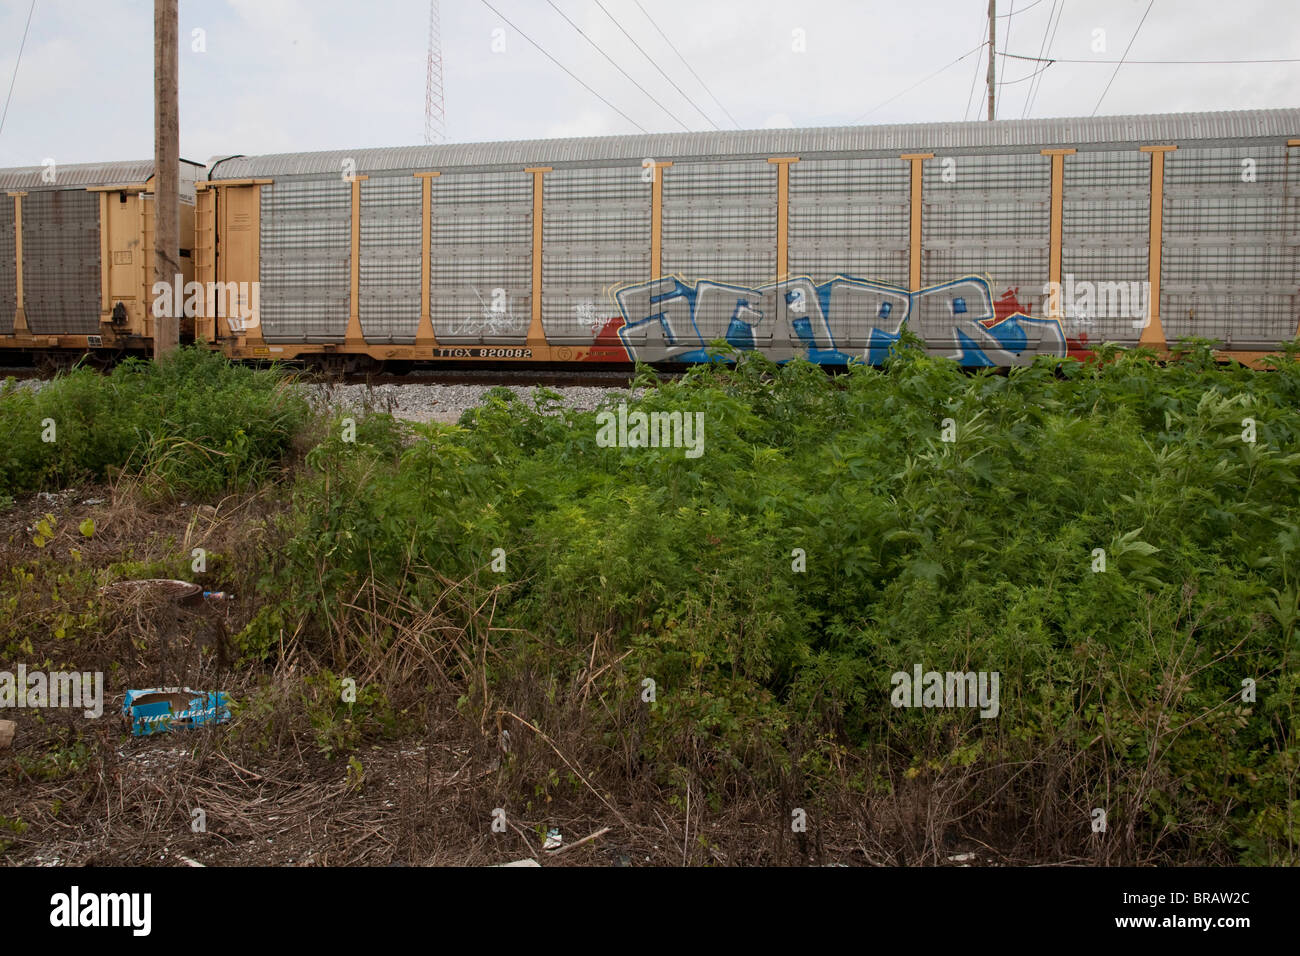 A rail car on the Public Belt railroad system in New Orleans is marked by graffiti. - Stock Image